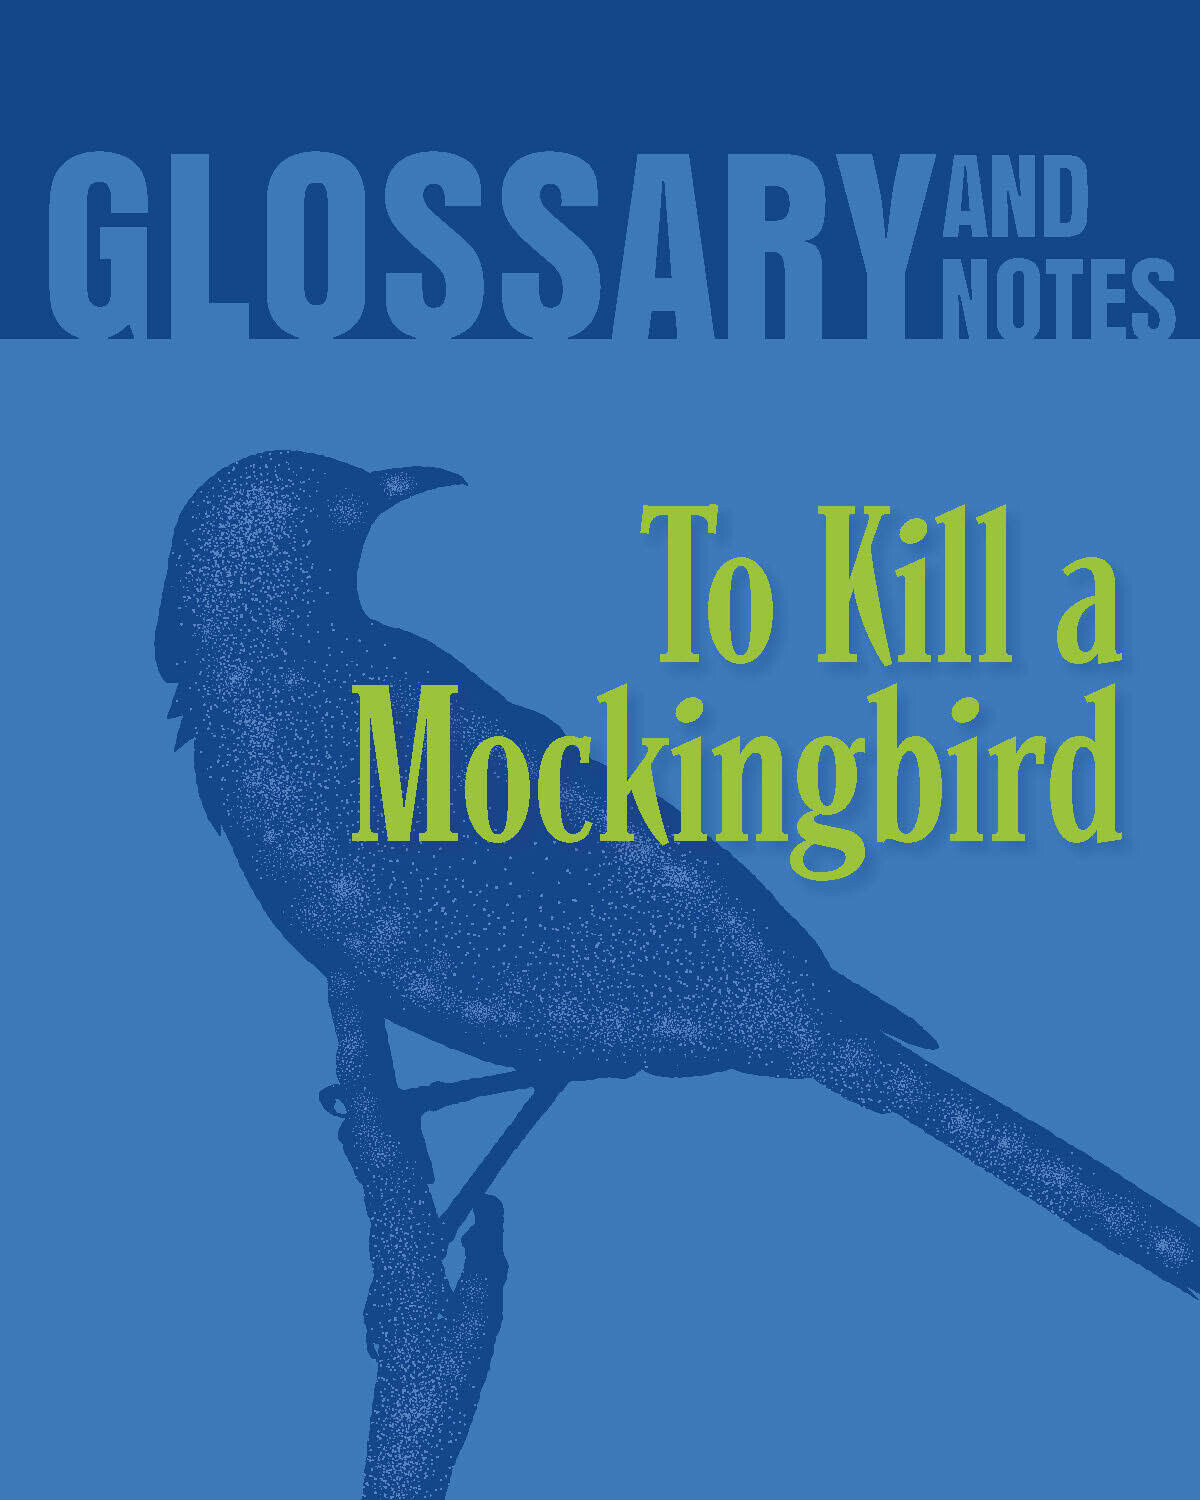 Glossary and Notes: To Kill a Mockingbird